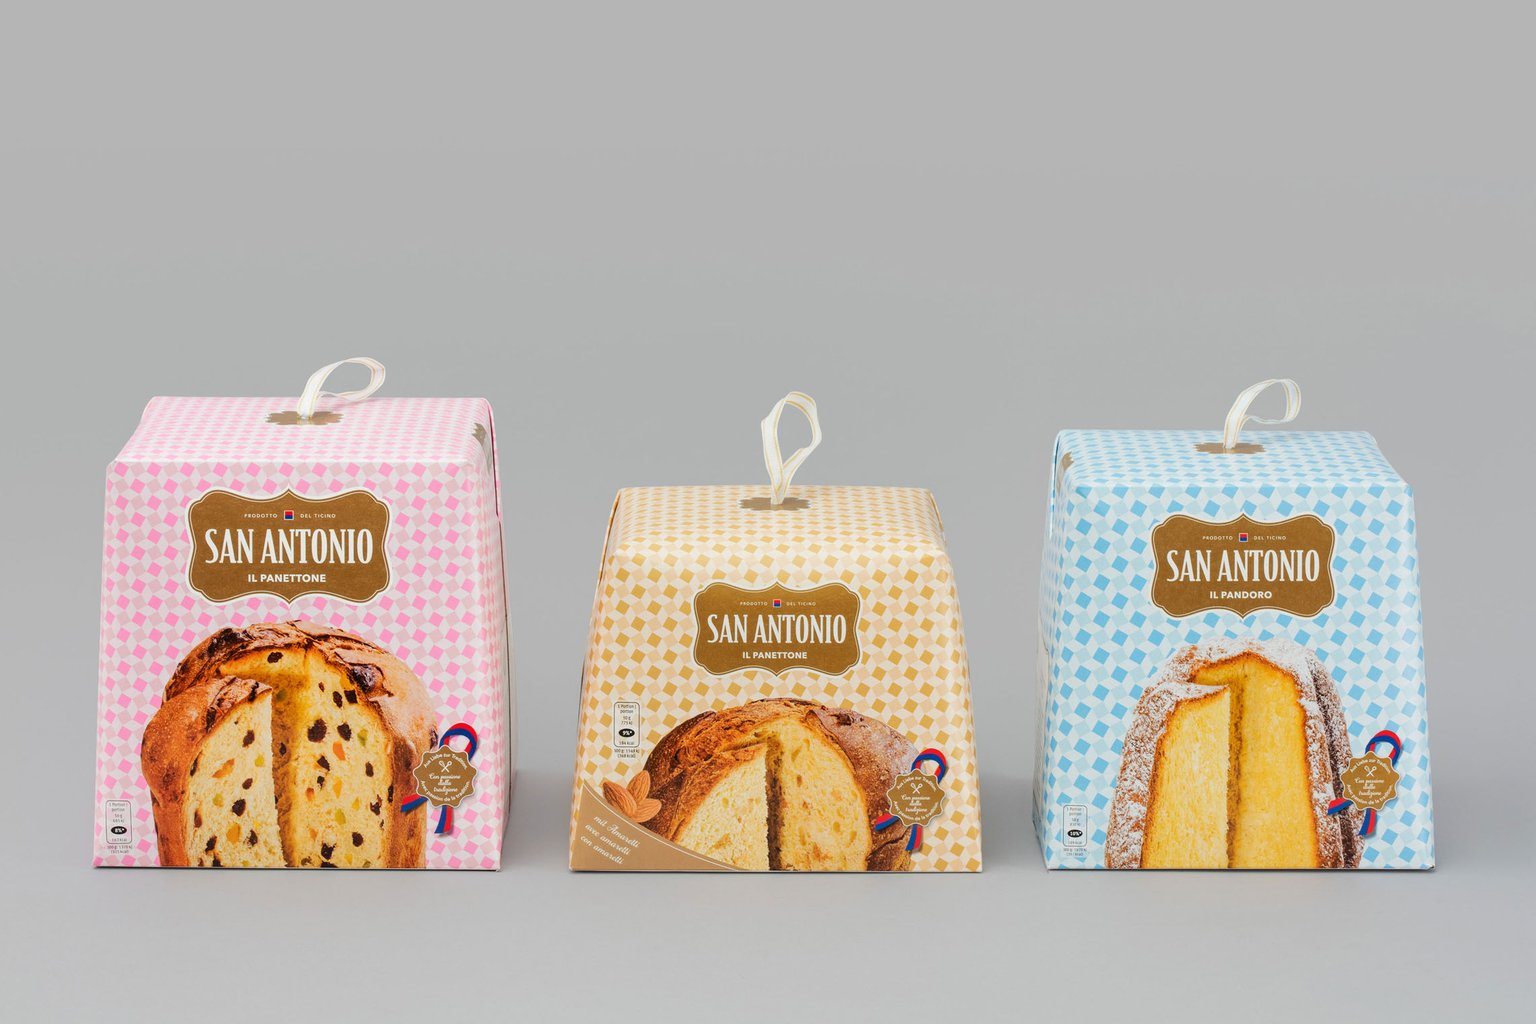 JOWA San Antonio Packaging Design